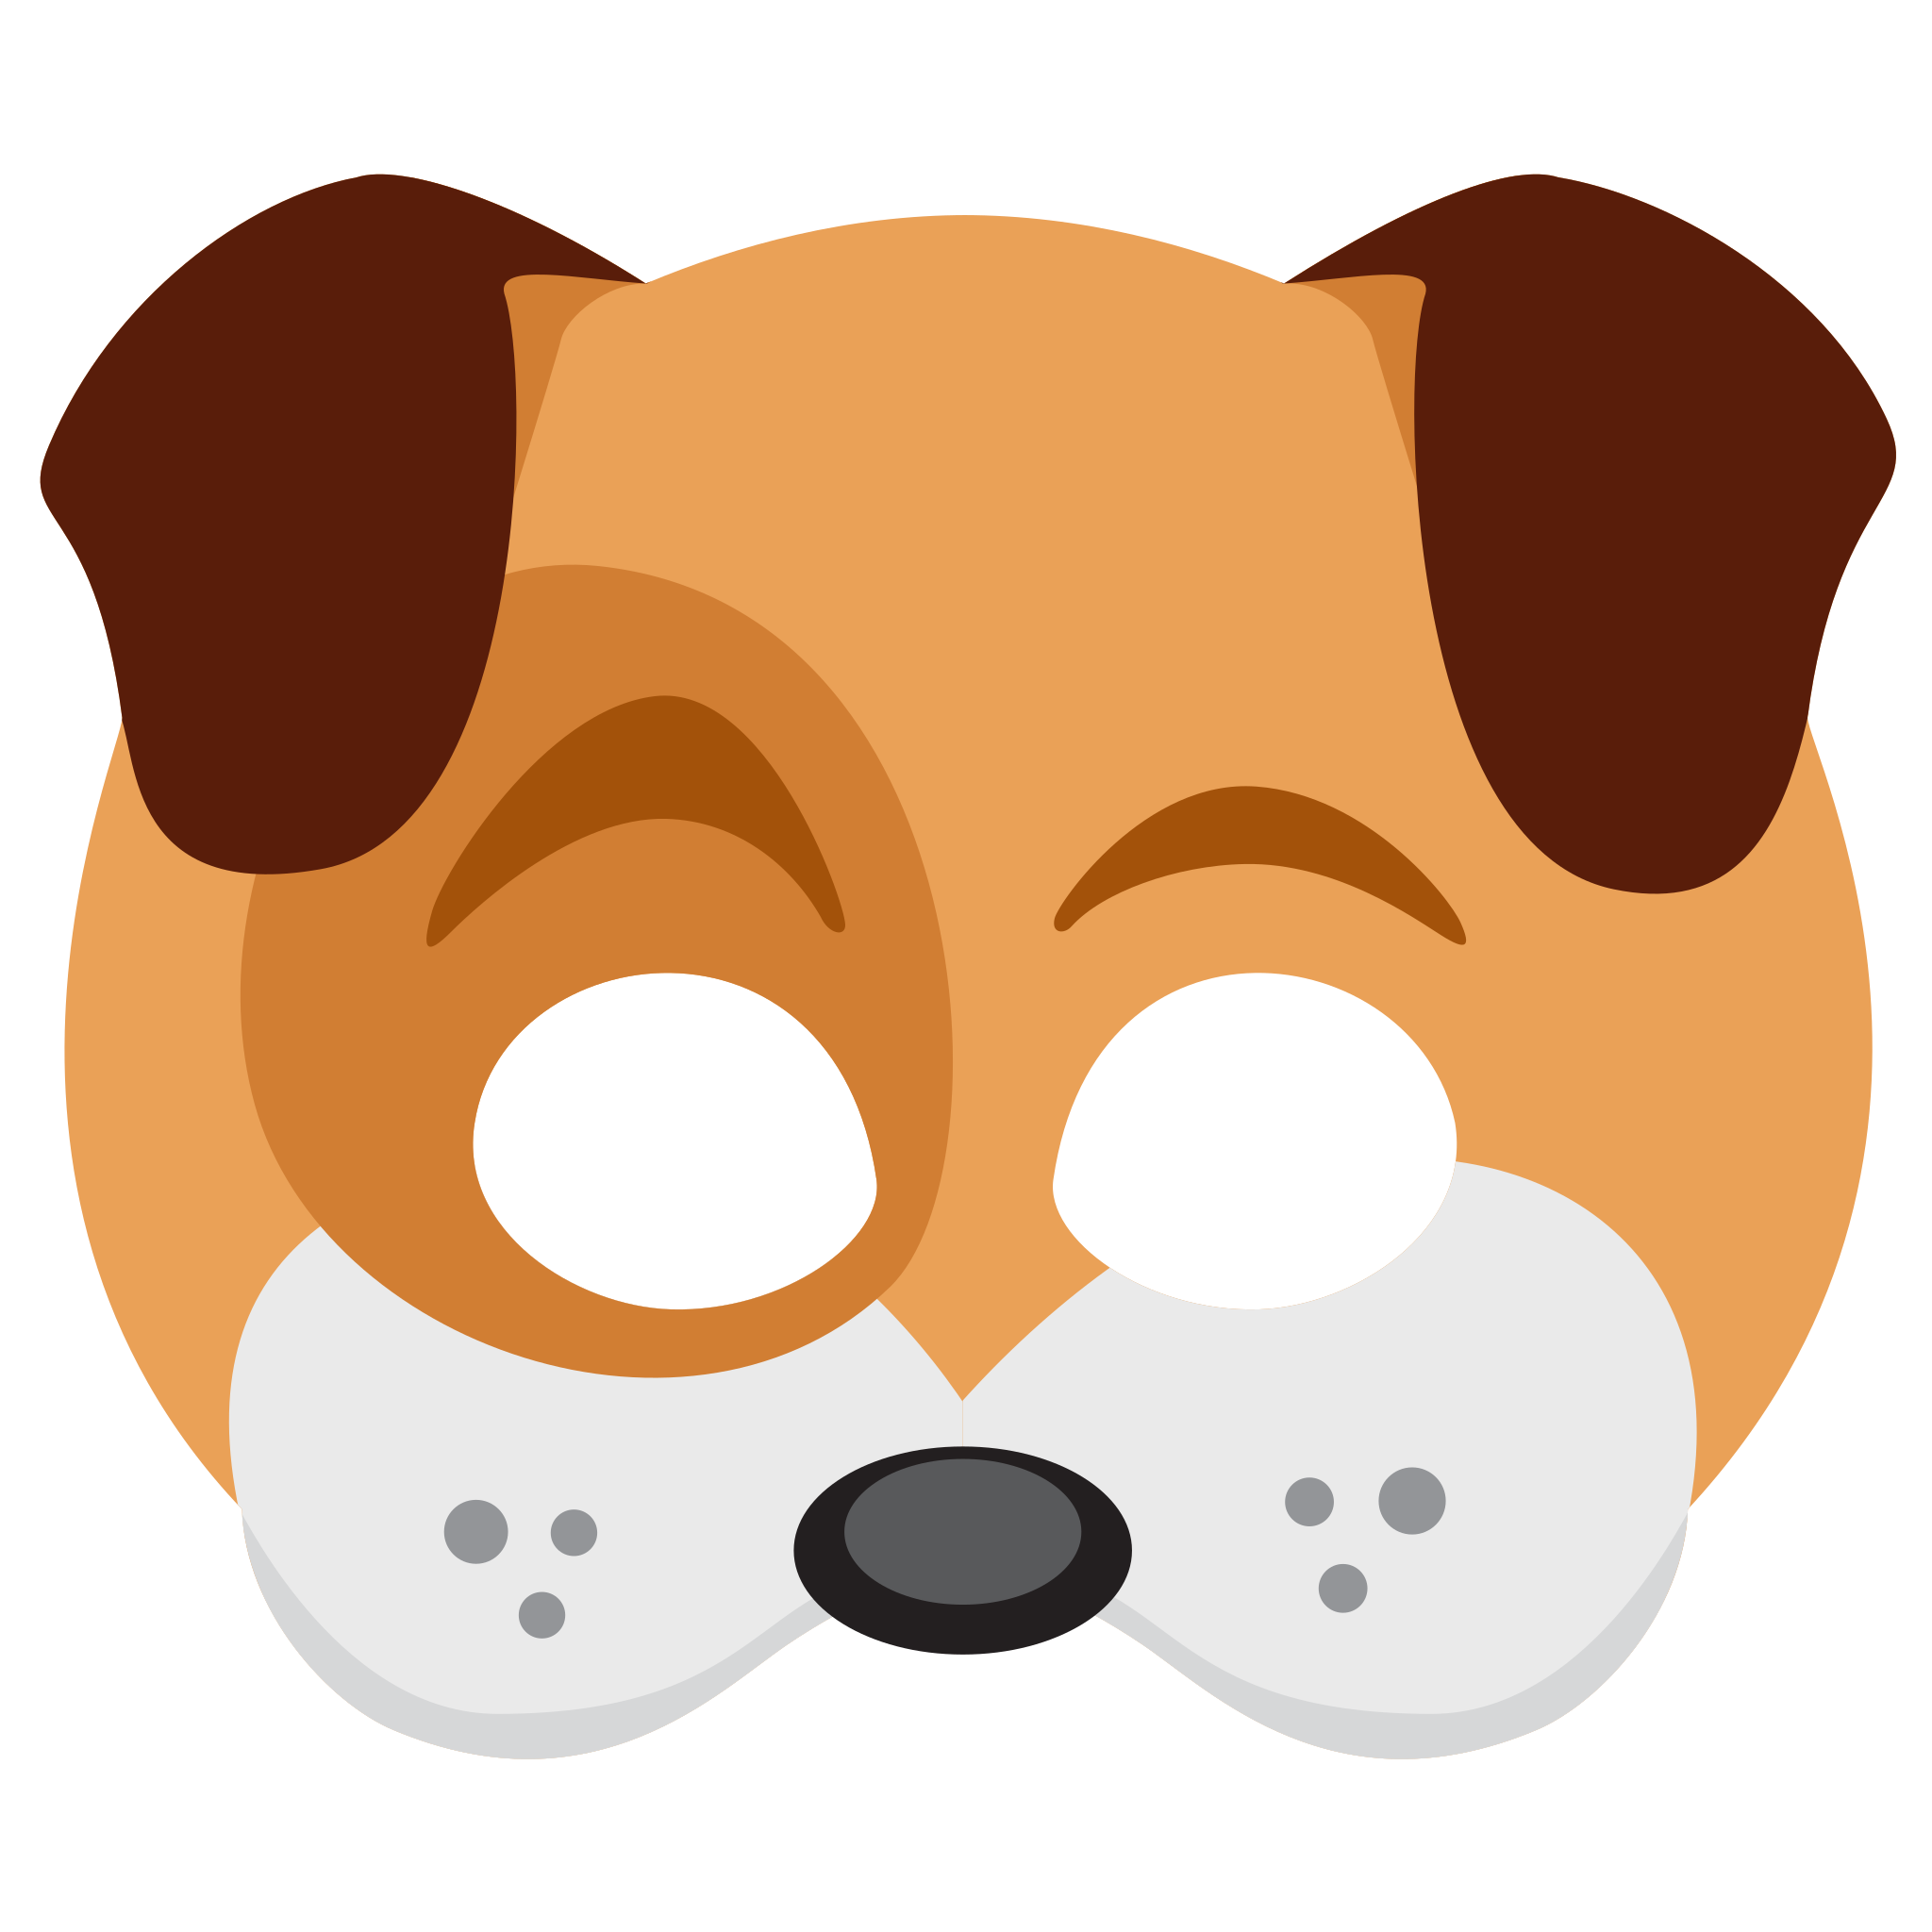 Face sticker png snapchat. Dog mask clipart